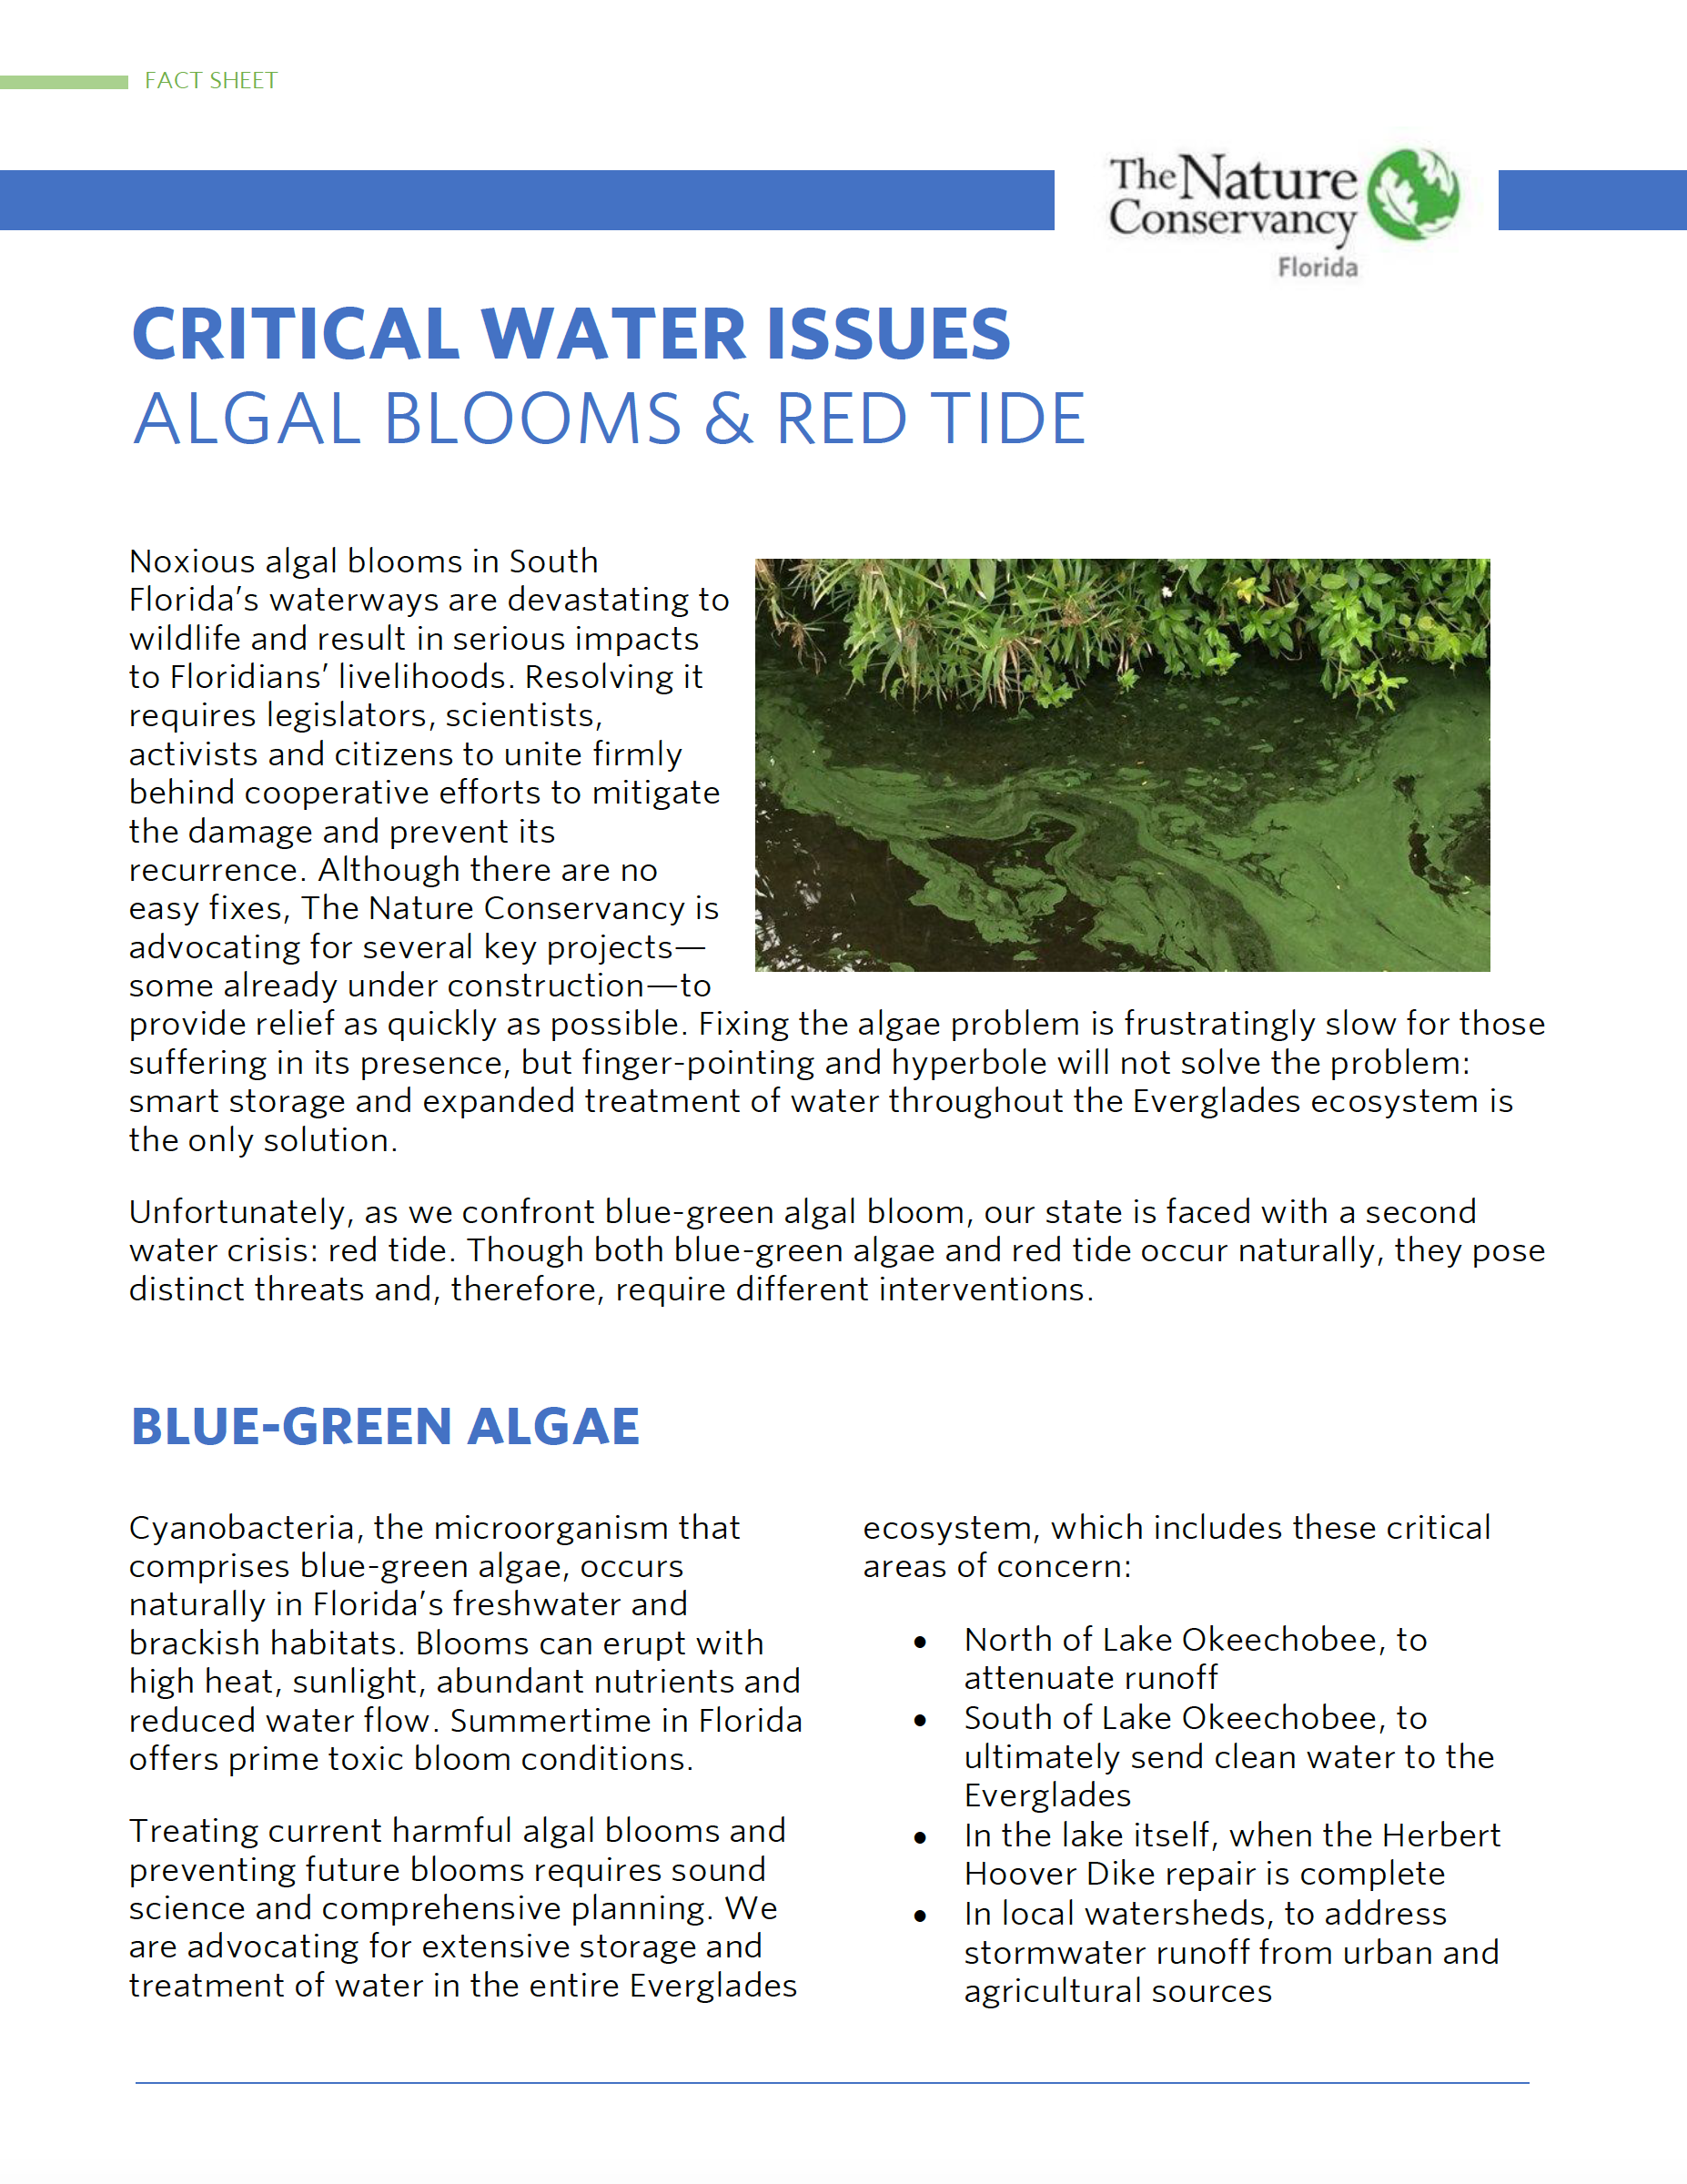 Algal Blooms and Red Tide Fact Sheet